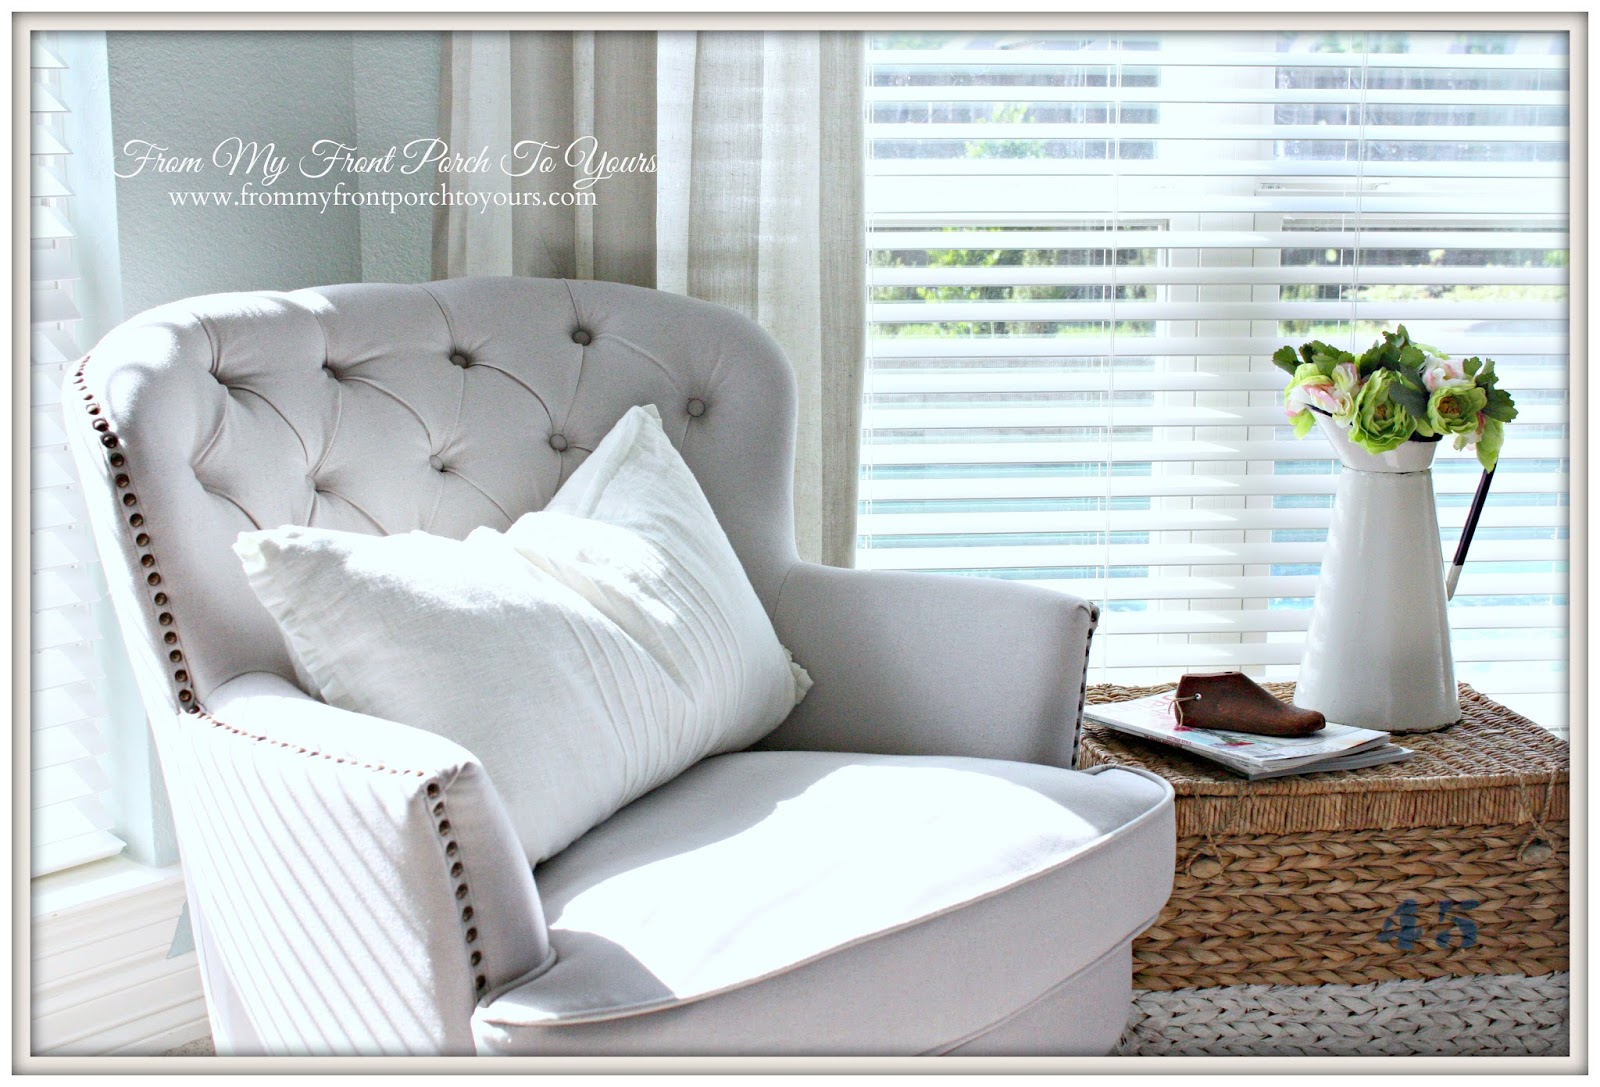 From My Front Porch To Yours- French Farmhouse Bedroom Linen Club Chair